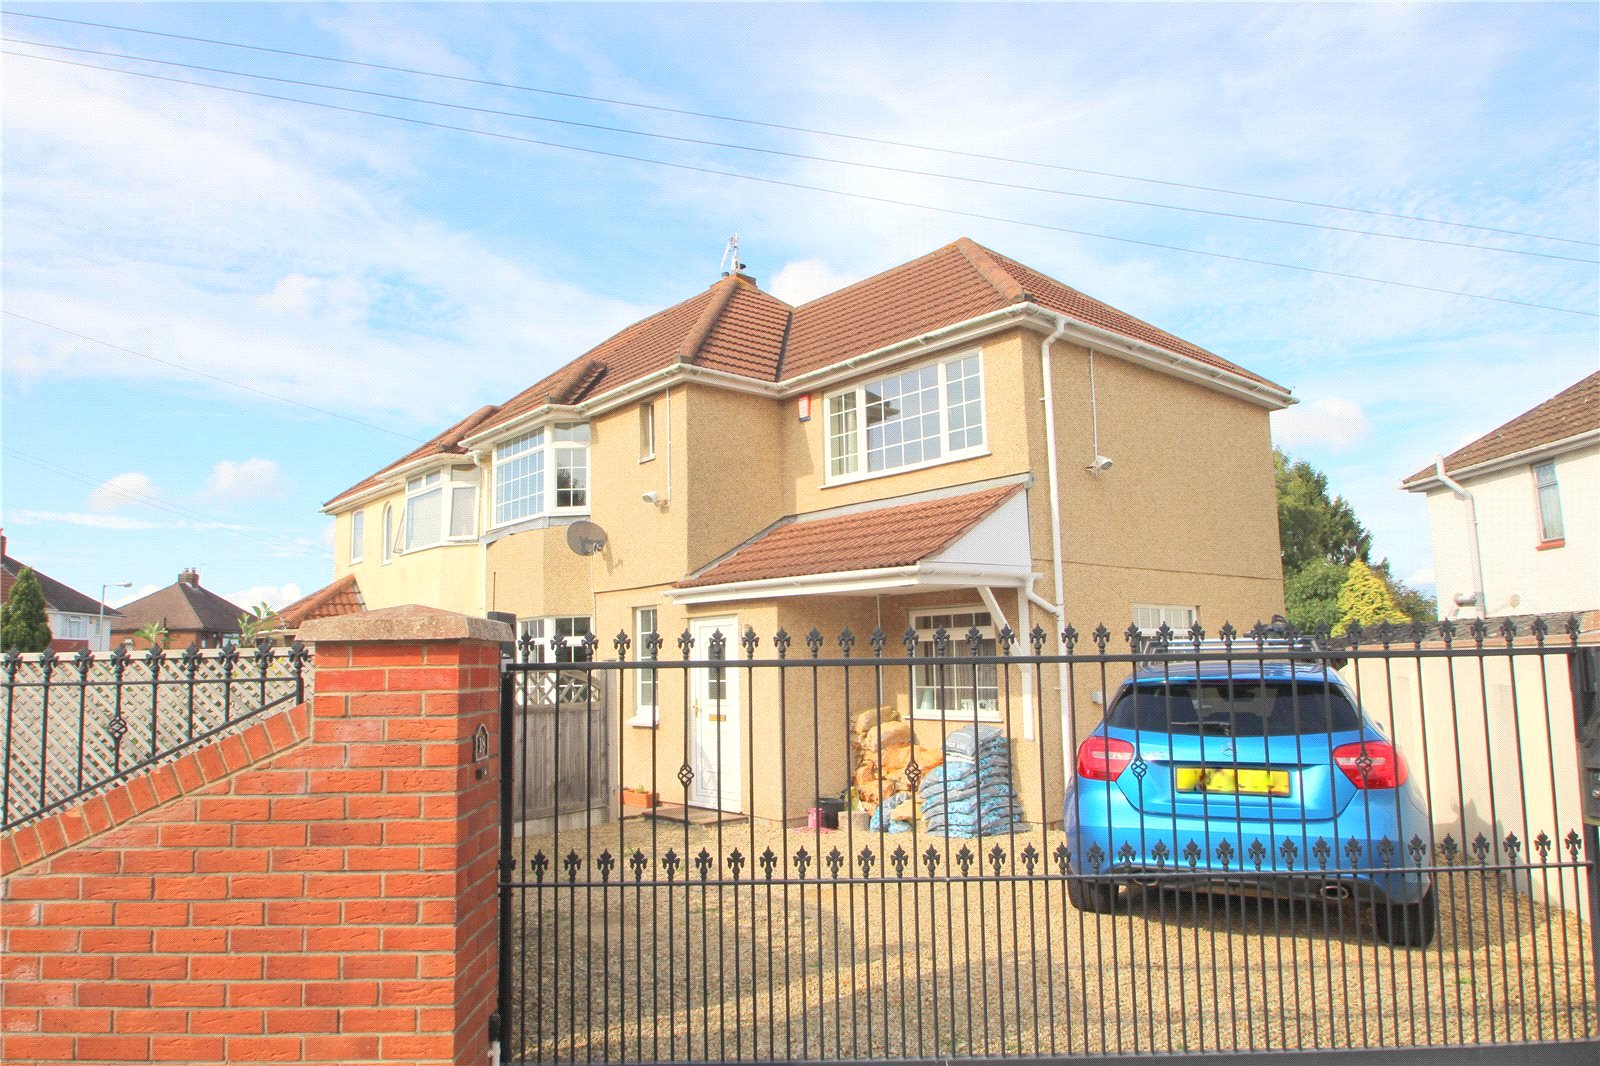 3 Bedrooms Semi Detached House for sale in Maytree Avenue Headley Park Bristol BS13